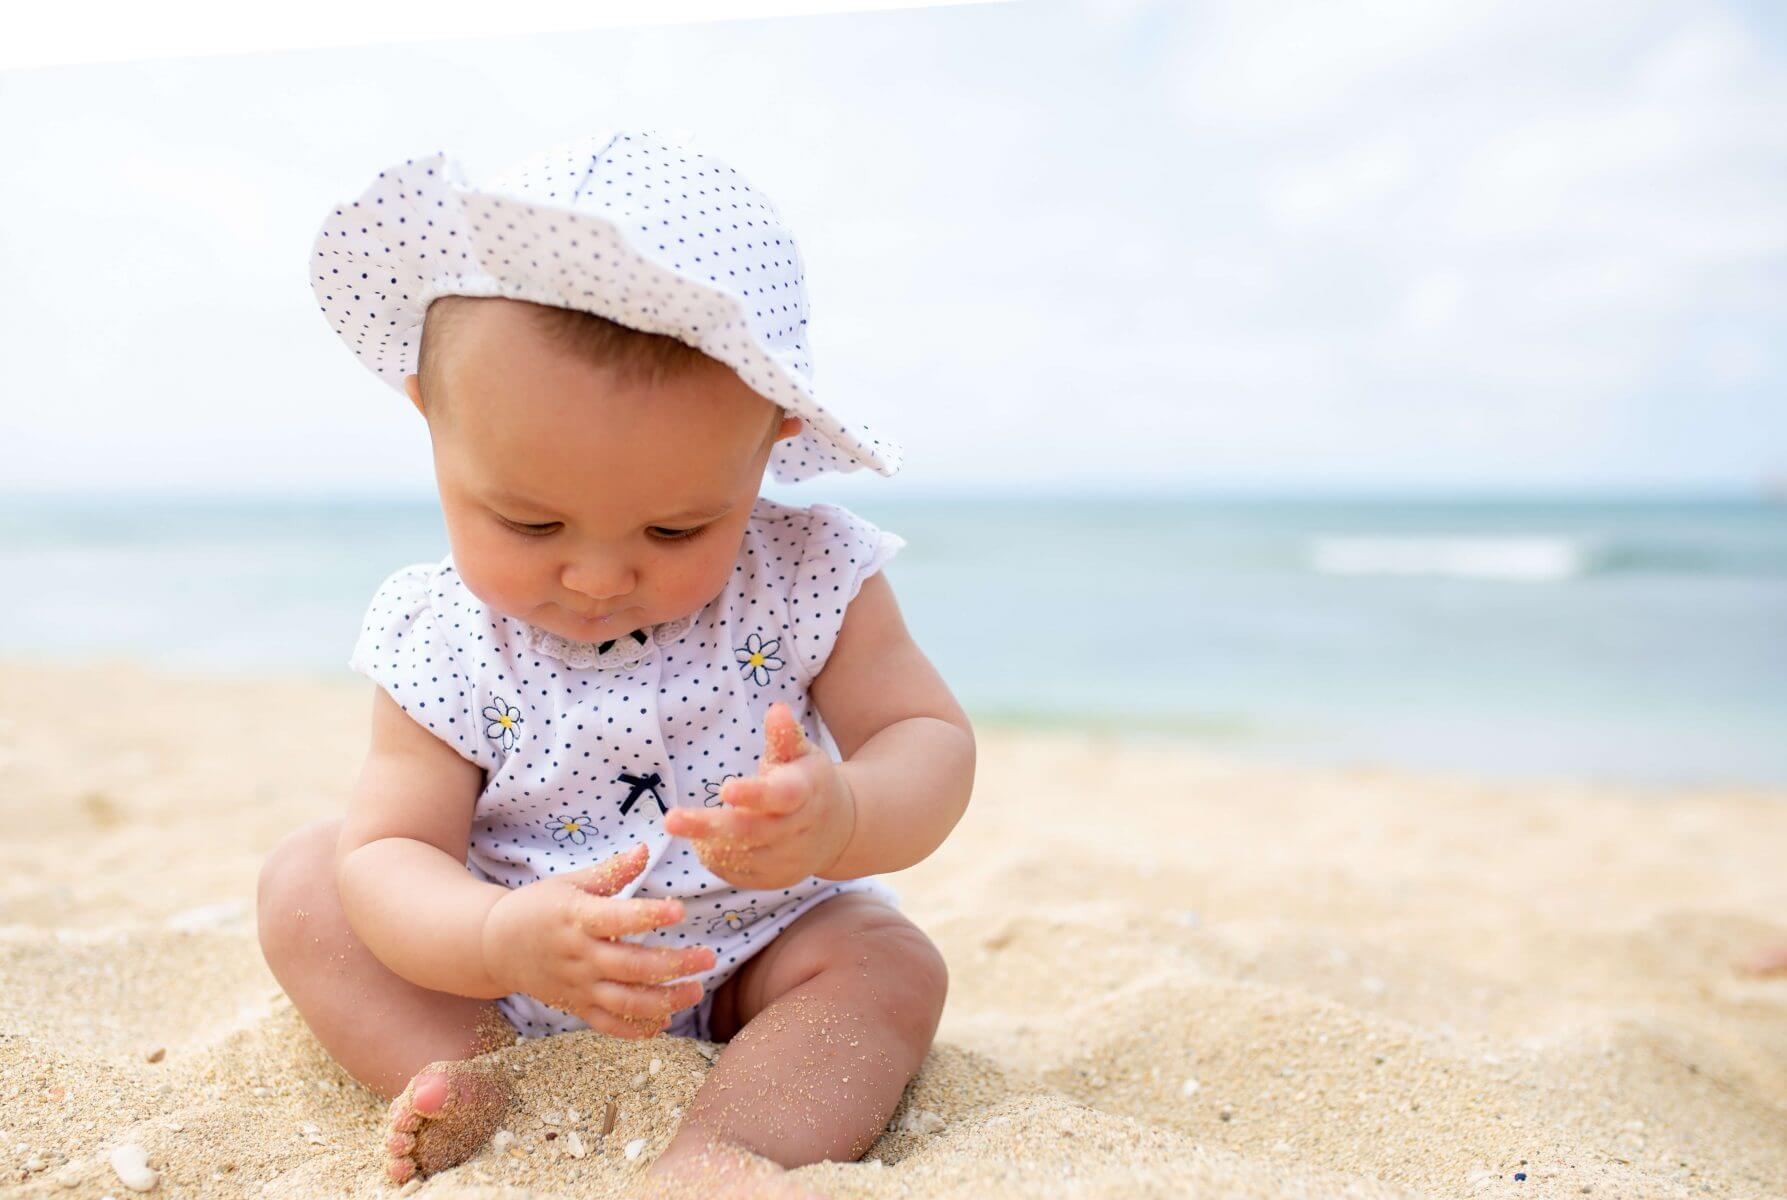 6 Months Old and Already Trying to Build Sand Castles